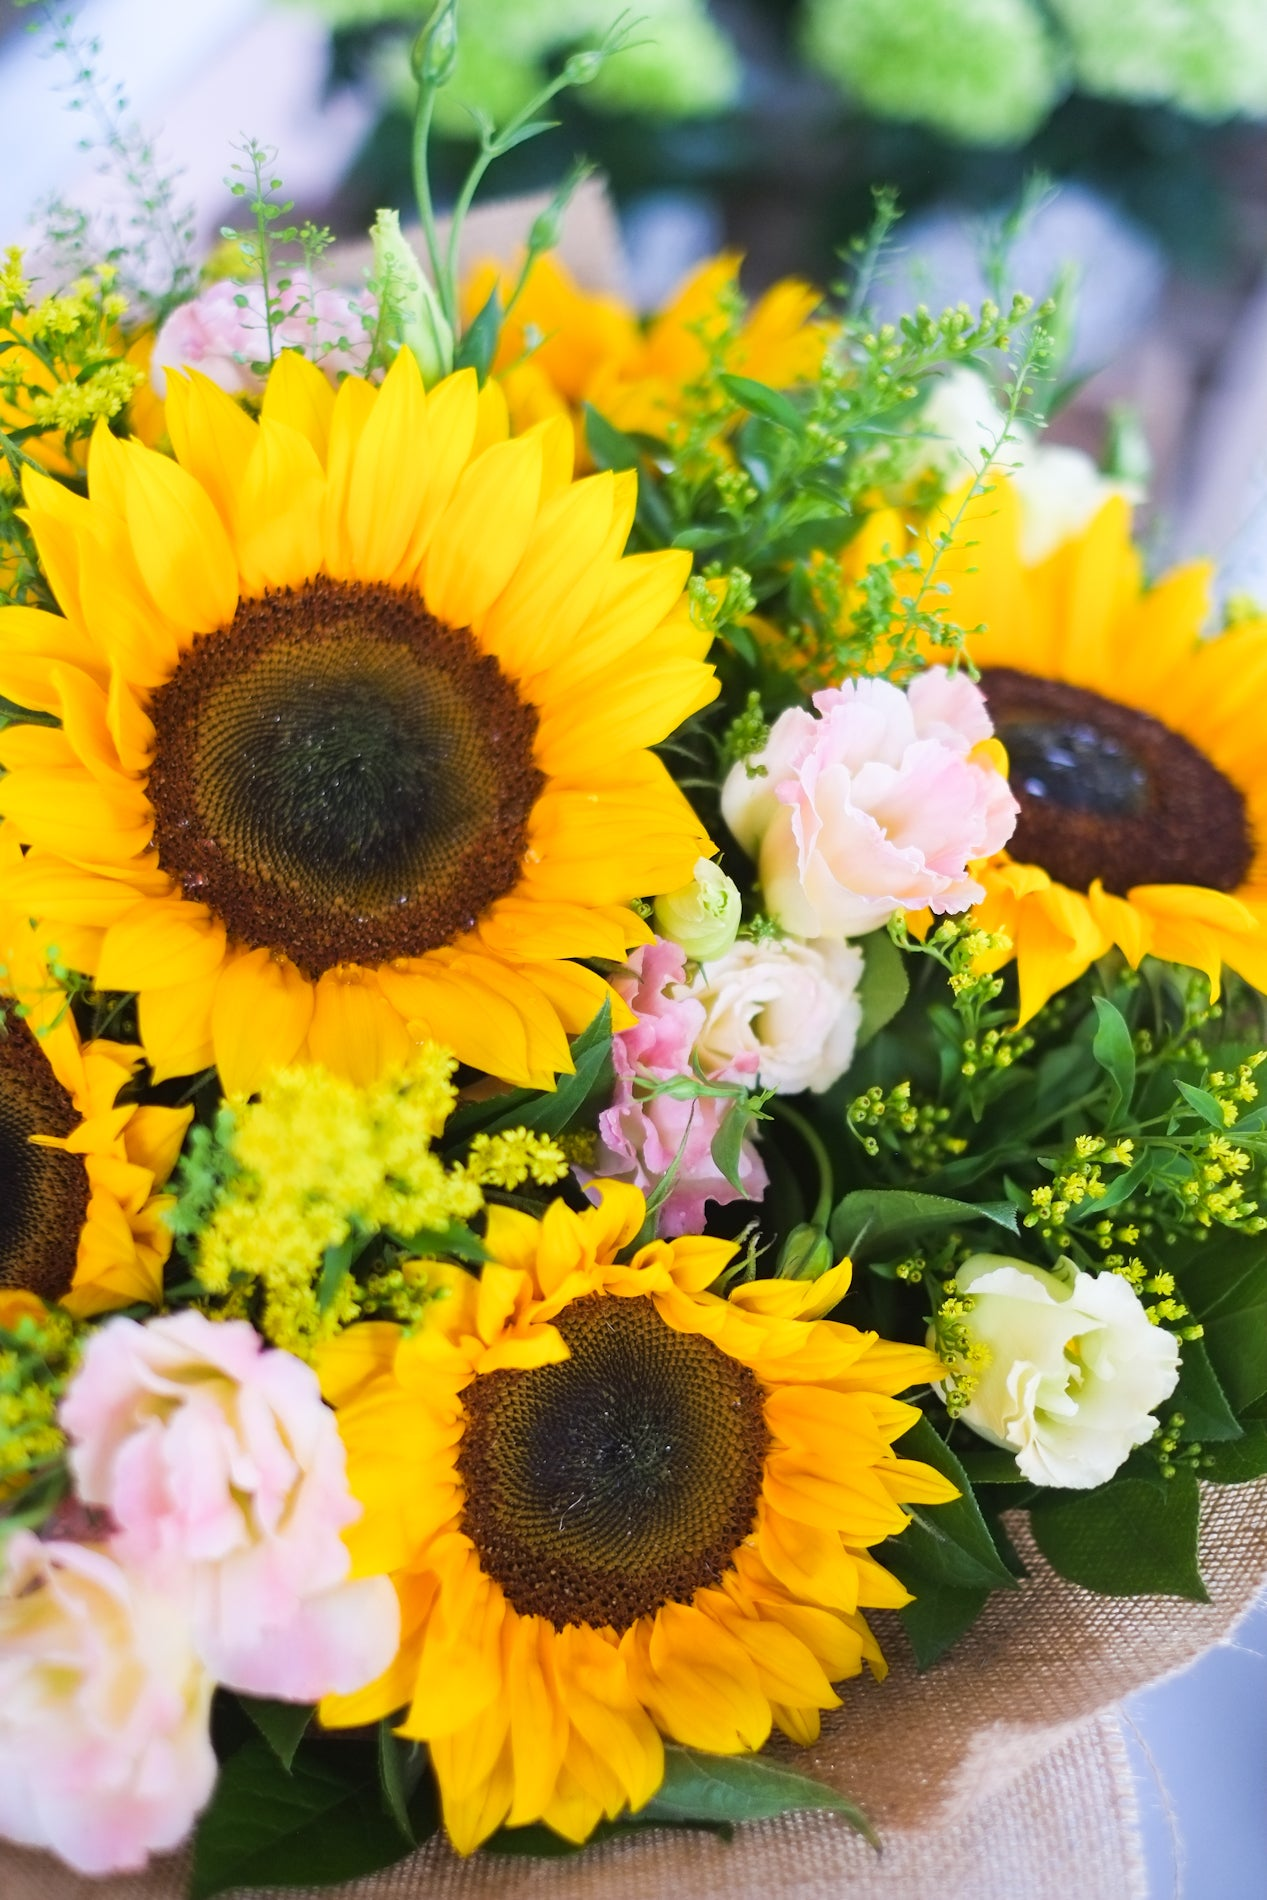 Sunflowers flower bouquet with lisianthus